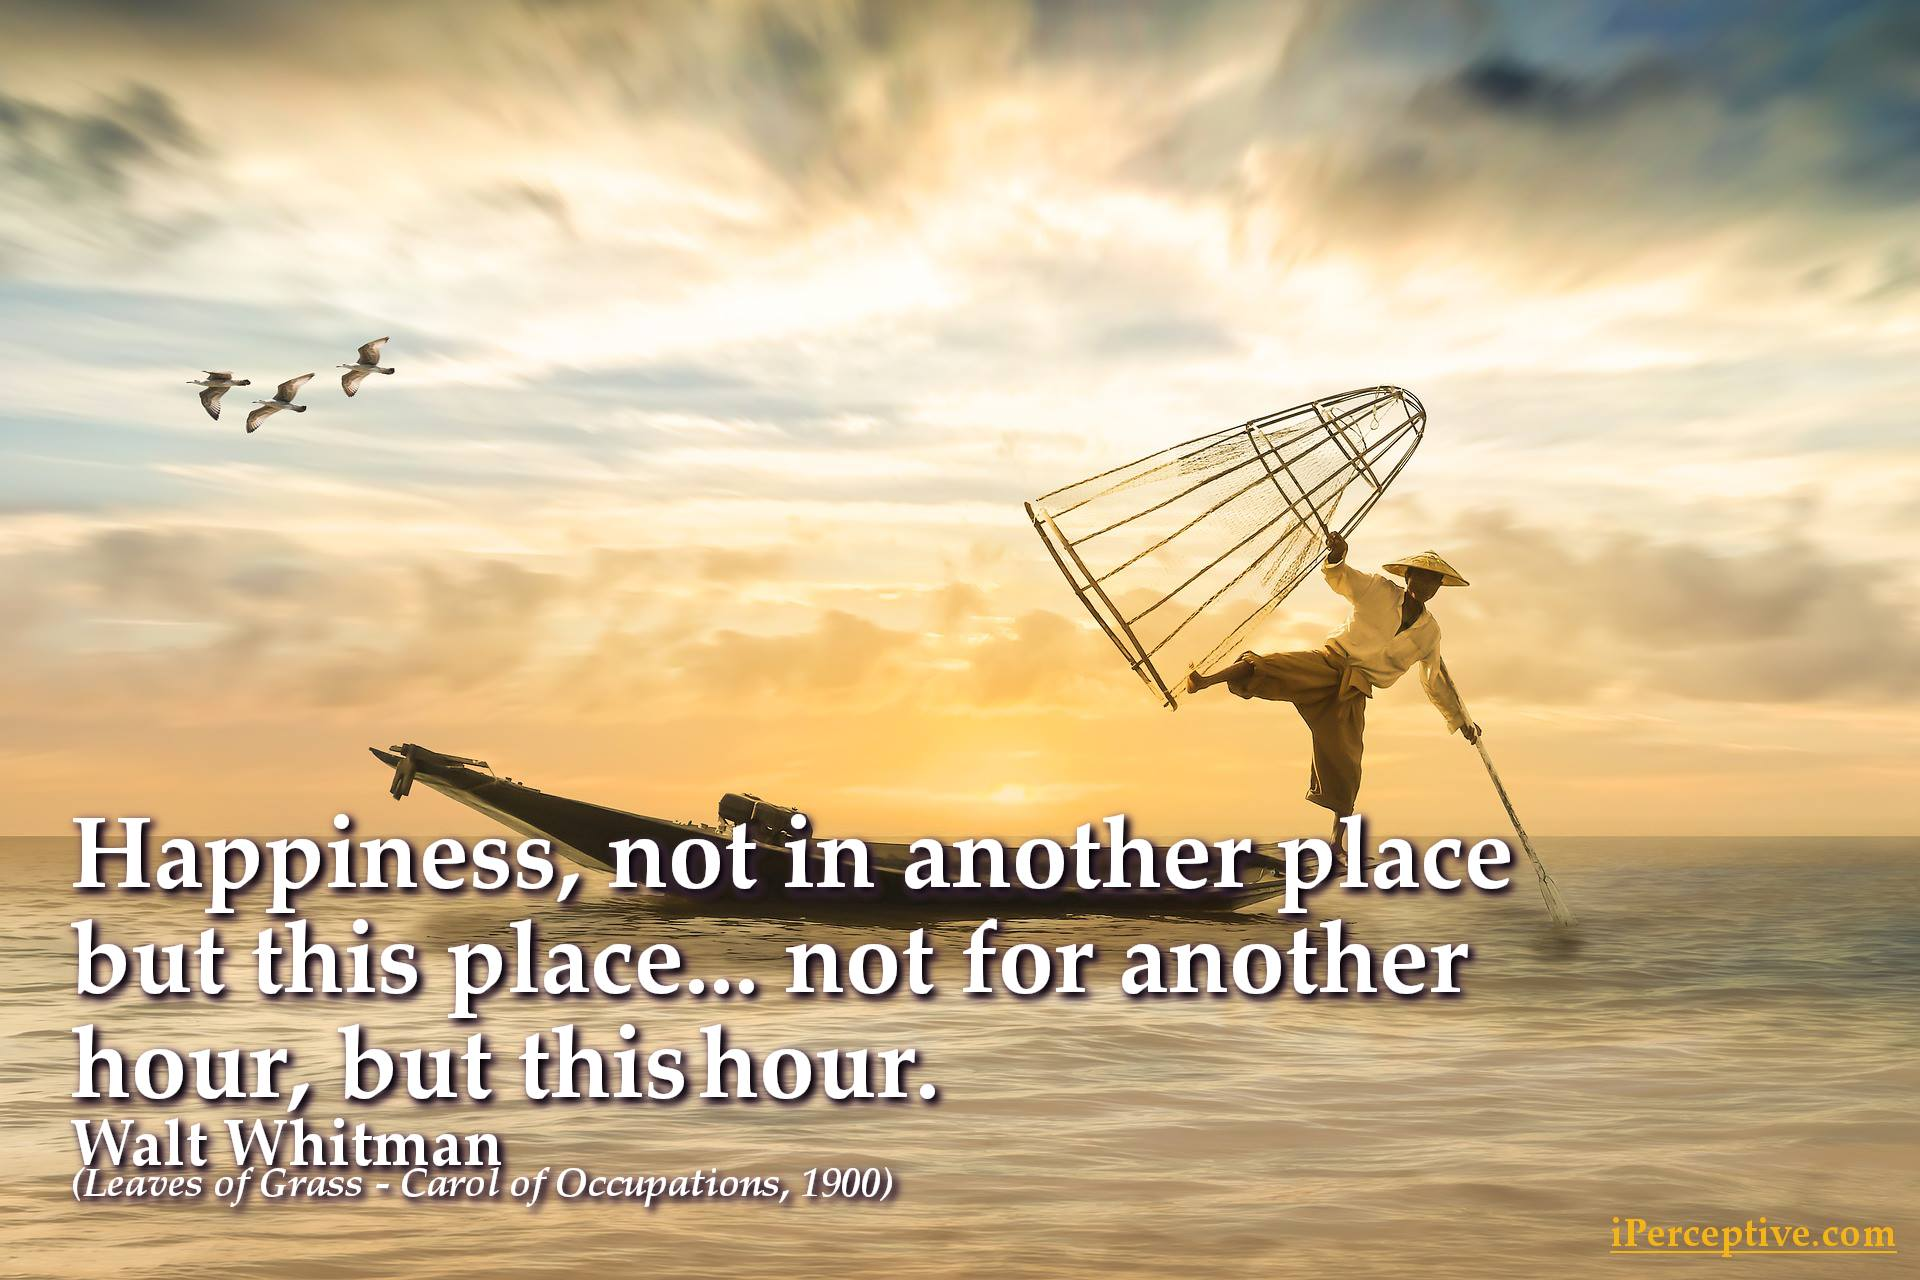 Walt Whitman Happiness Quote: Happiness, not in another place but this place ...